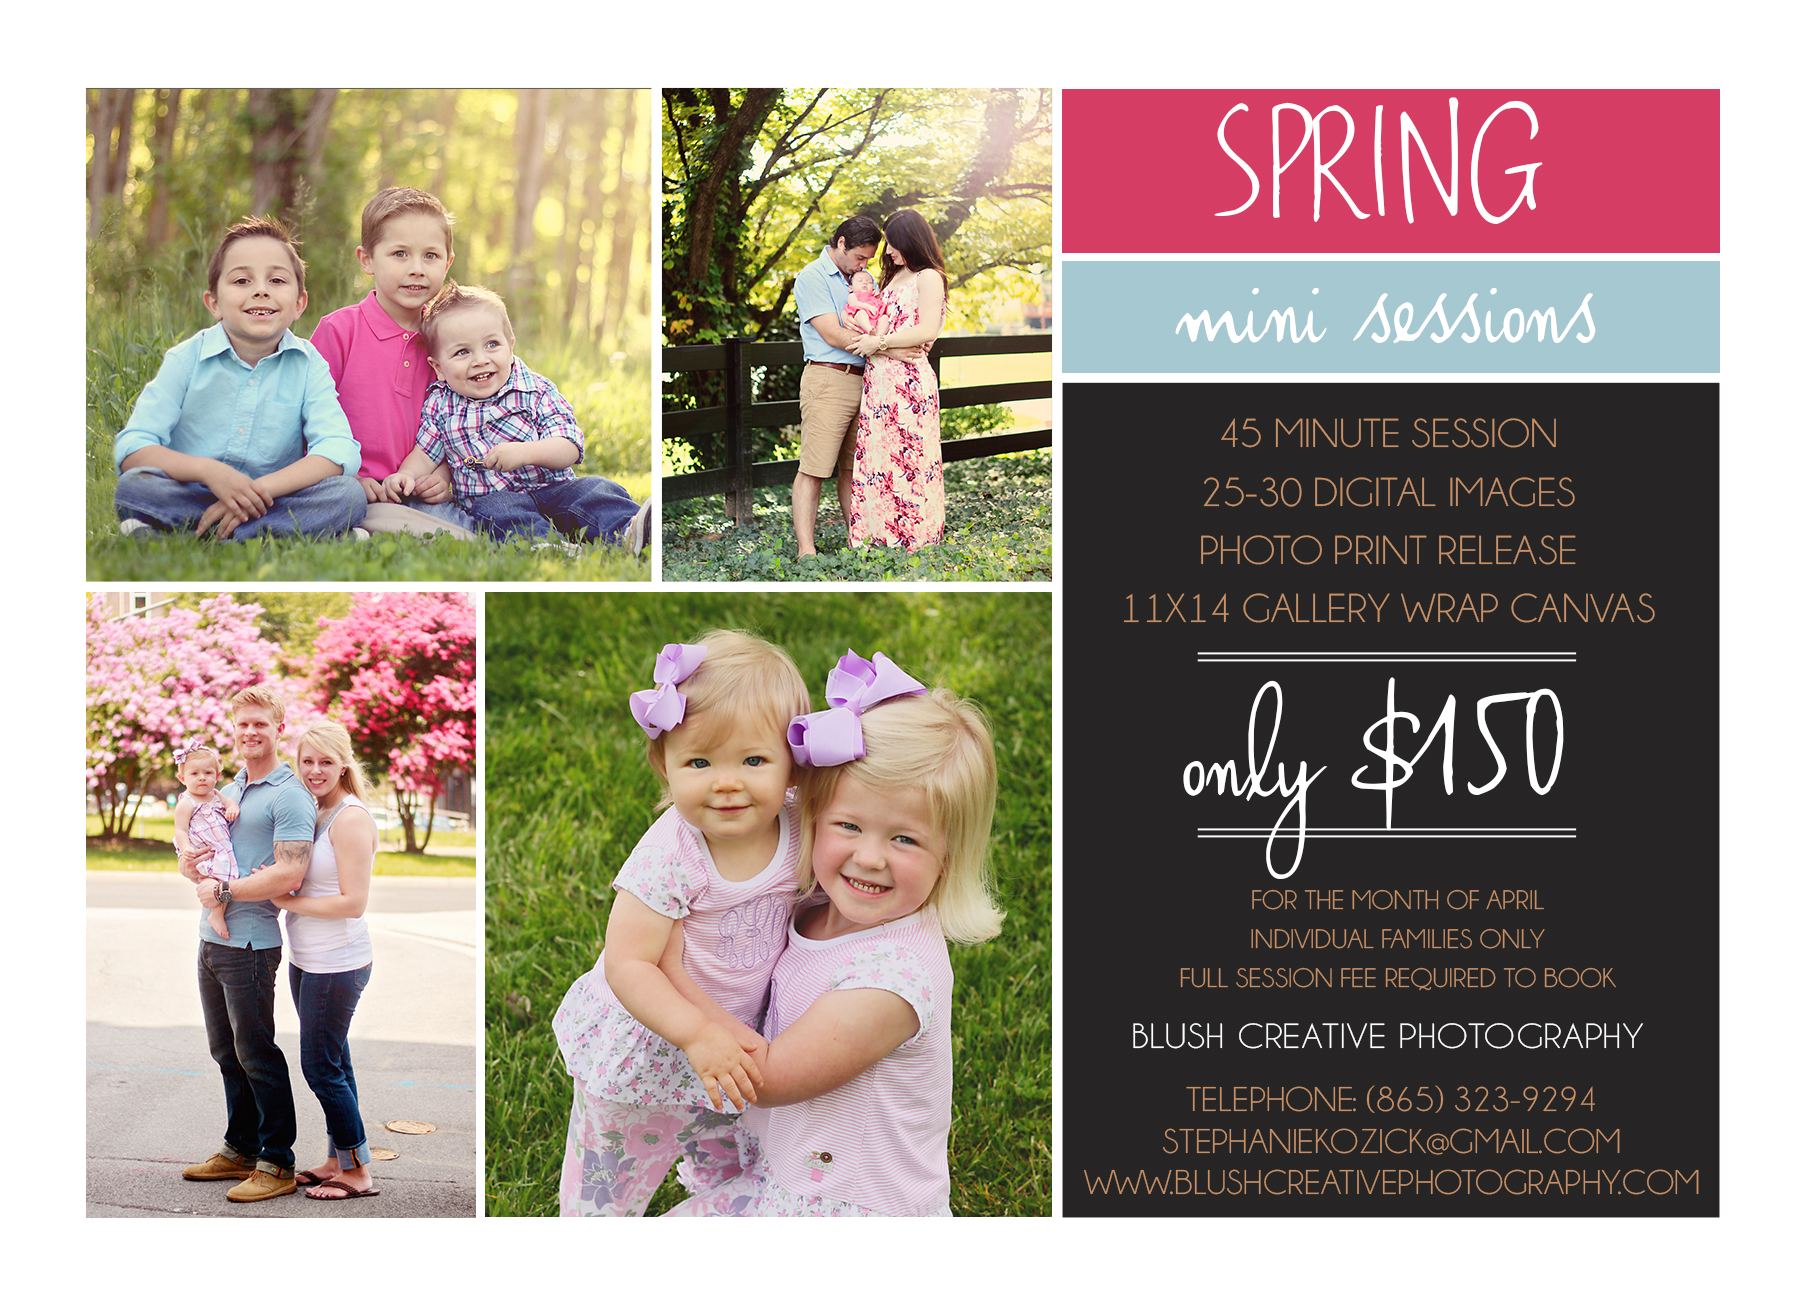 spring family photo session special